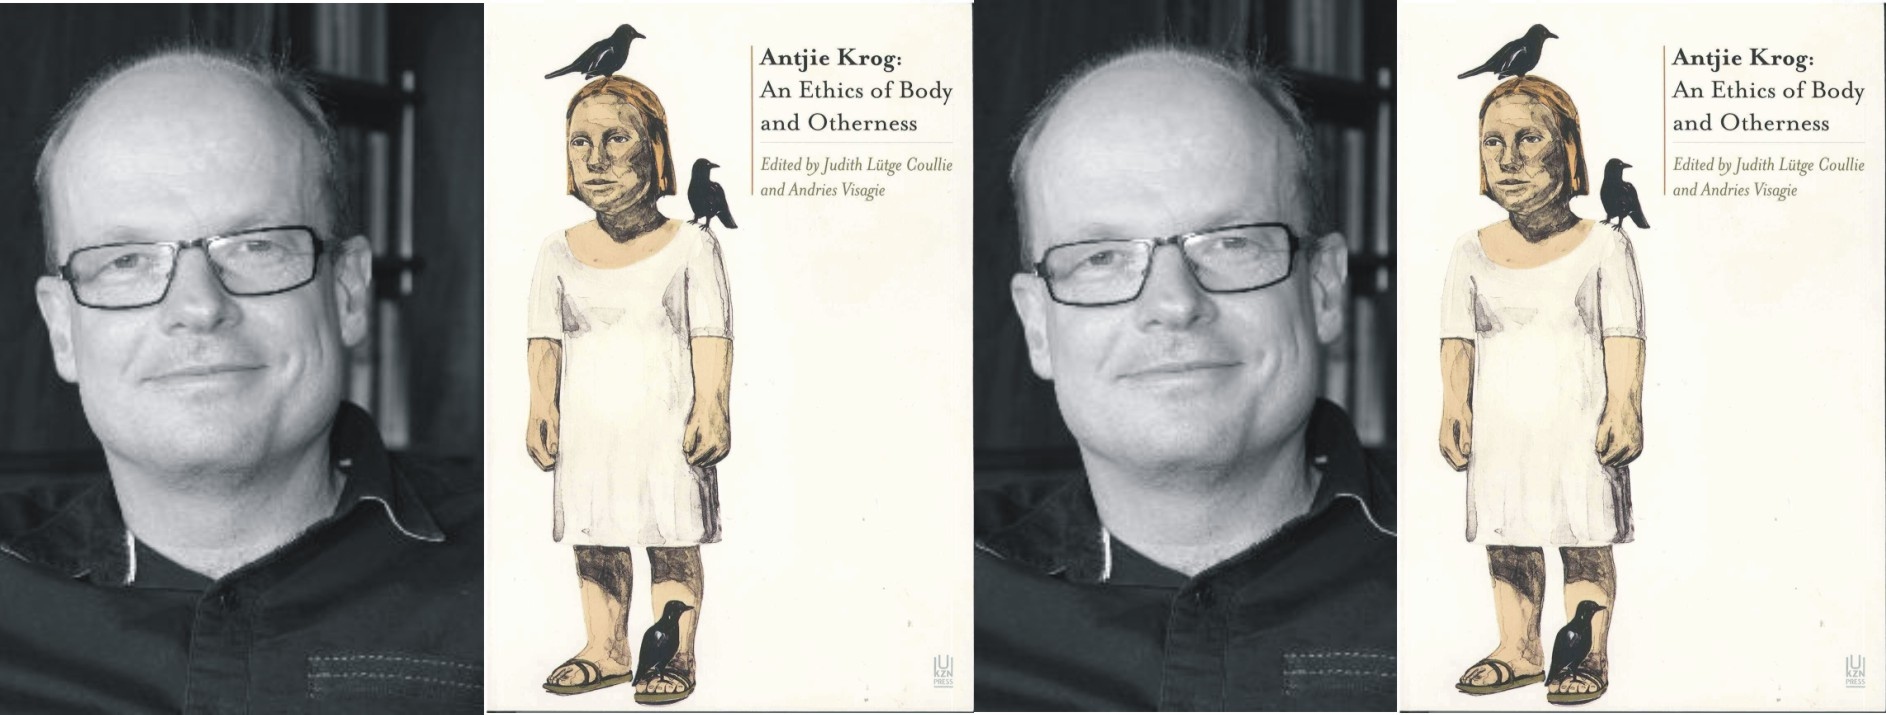 Antjie Krog: An Ethics of Body and Otherness